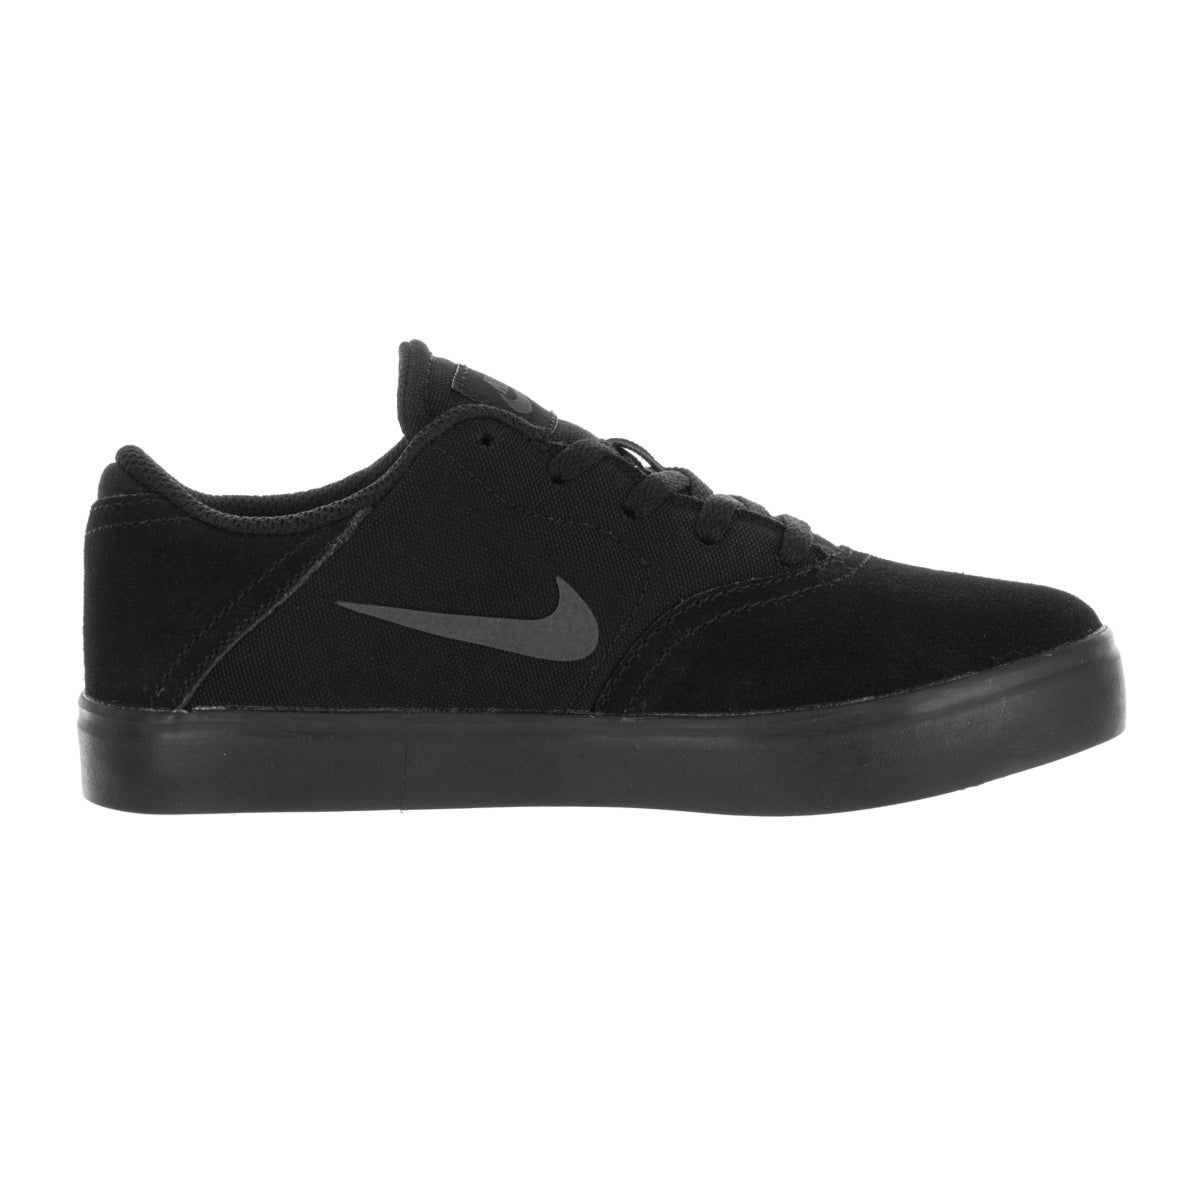 1caf21db359e60 Shop Nike Kids SB (PS) Check Black Anthracite Skate Shoe - Free Shipping  Today - Overstock.com - 13394083